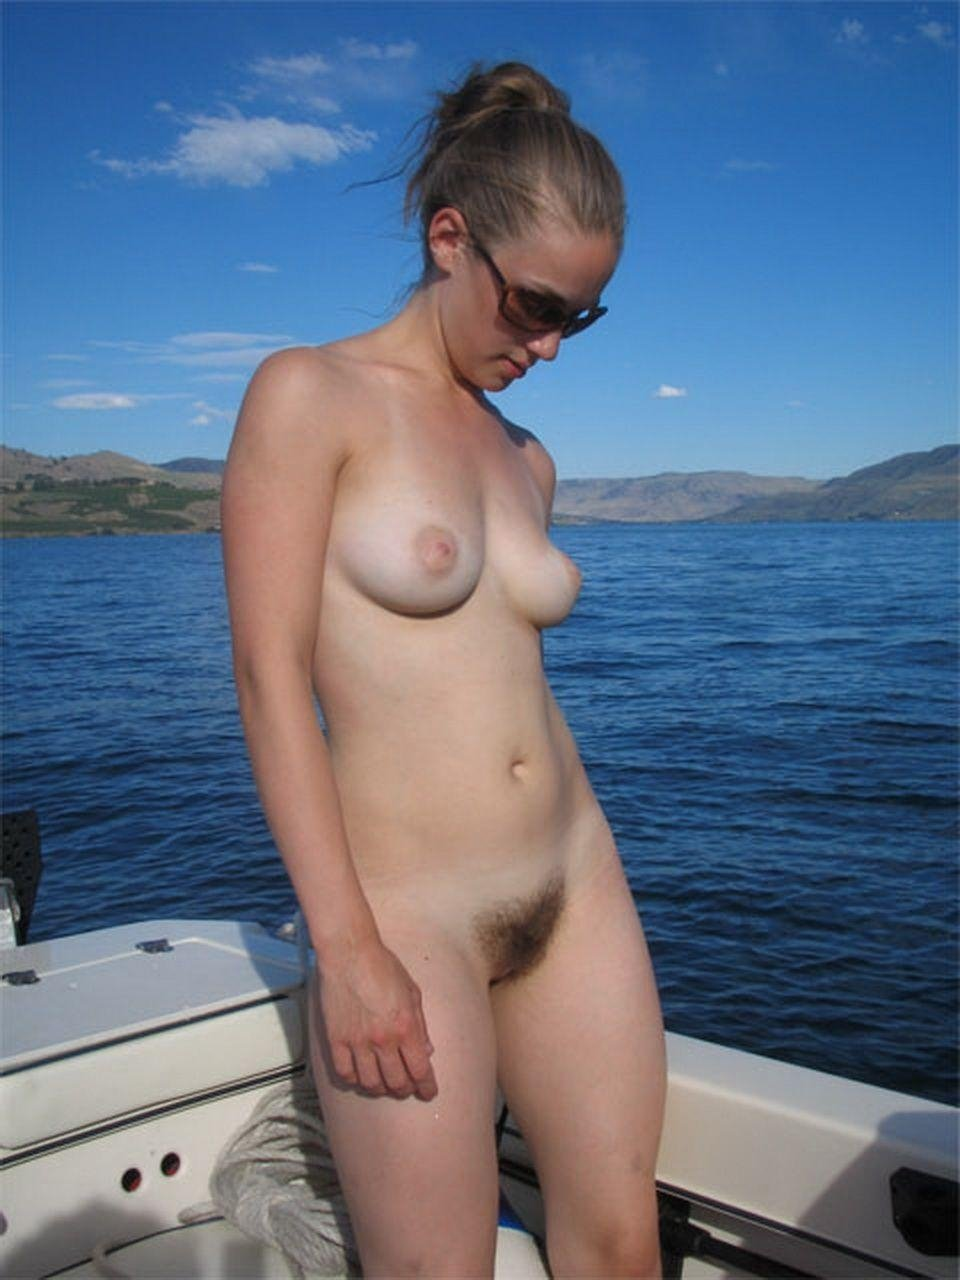 Wet tee shirt contest nude Sex behind husband cheating